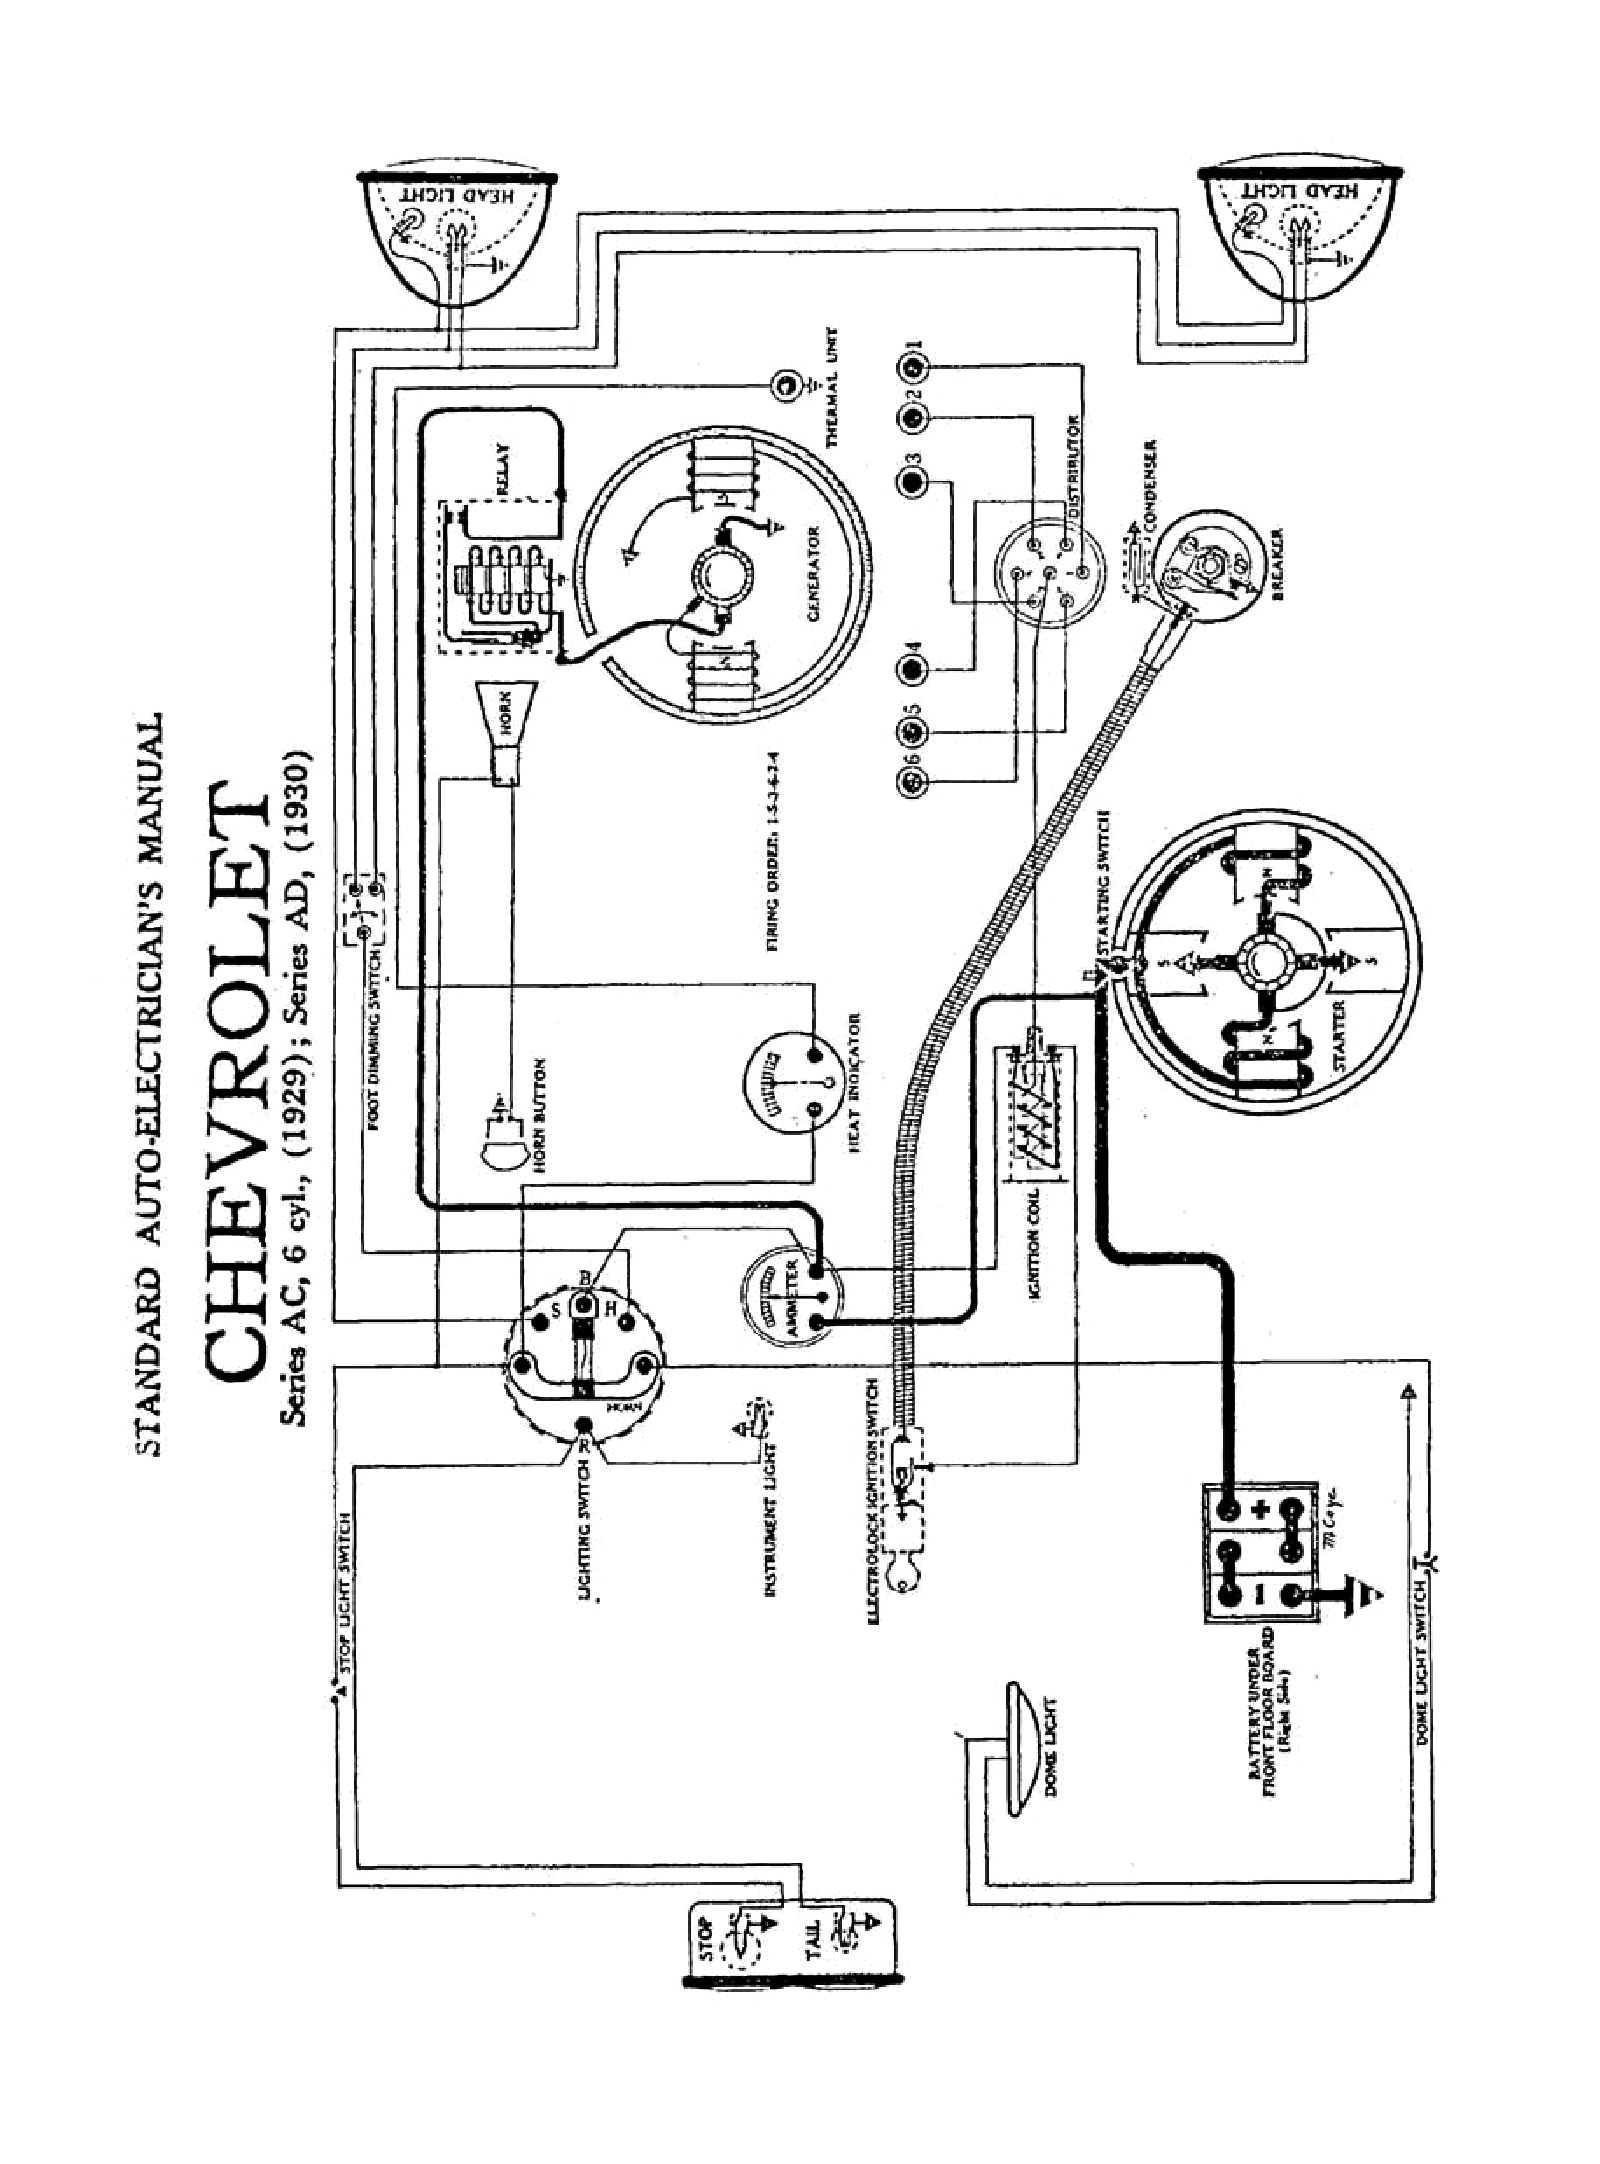 hight resolution of chevy wiring diagrams 1949 oldsmobile 1949 pontiac wiring harness